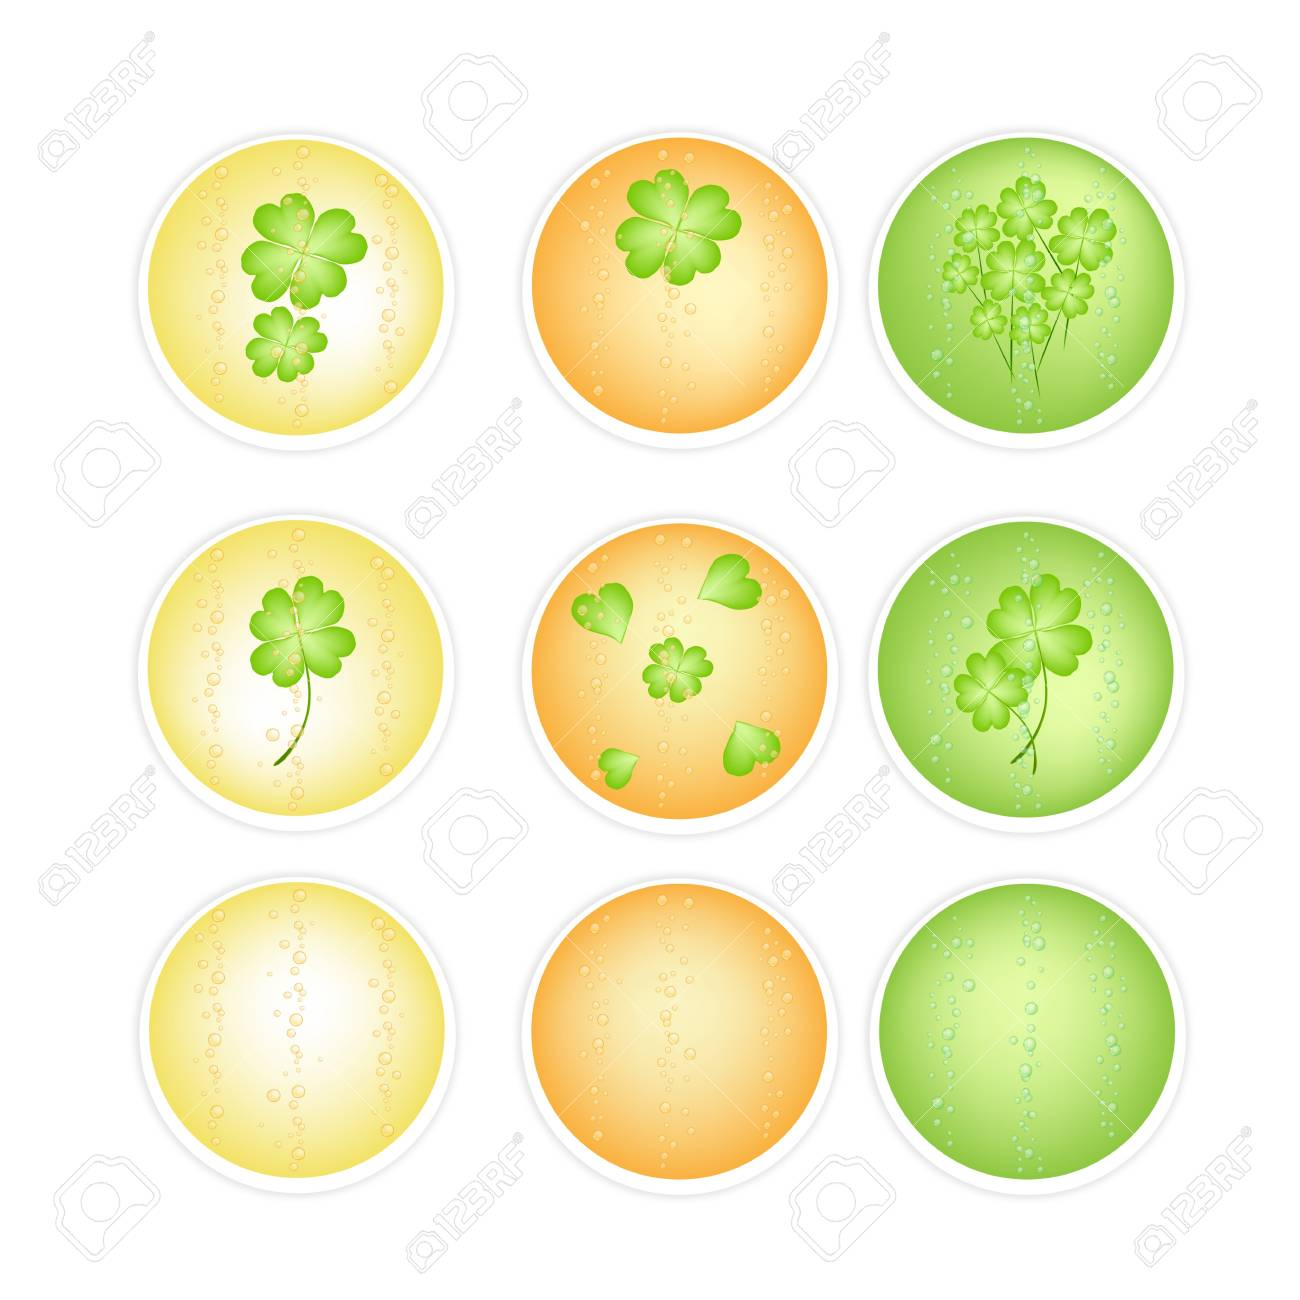 Symbols for Fortune and Luck, An Illustration Colllection of Four Leaf Clovers or Shamrocks on Round Label for St  Patricks Day Celebration Stock Vector - 18230696